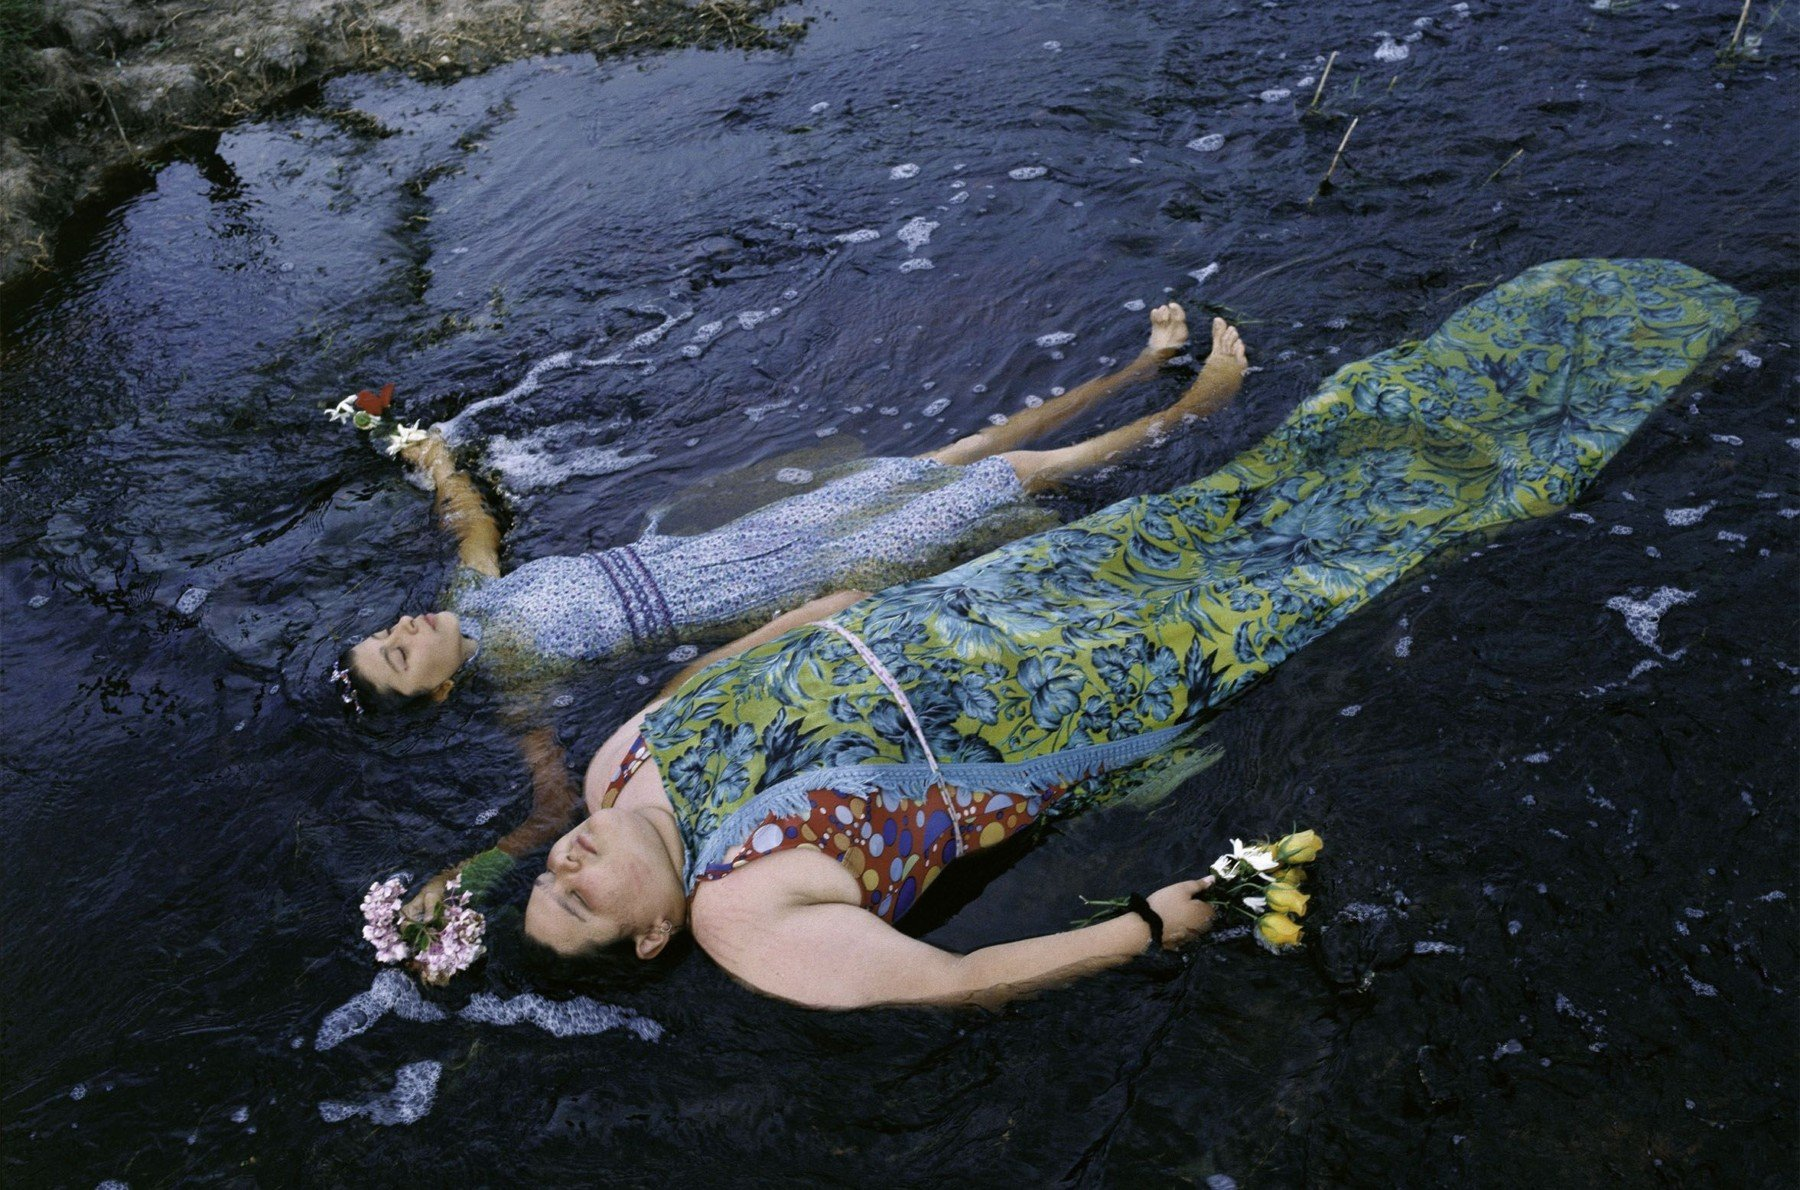 Kids swimming on a river, Buenos Aires, Argentina, 2001 by photographer Alessandra Sanguinetti